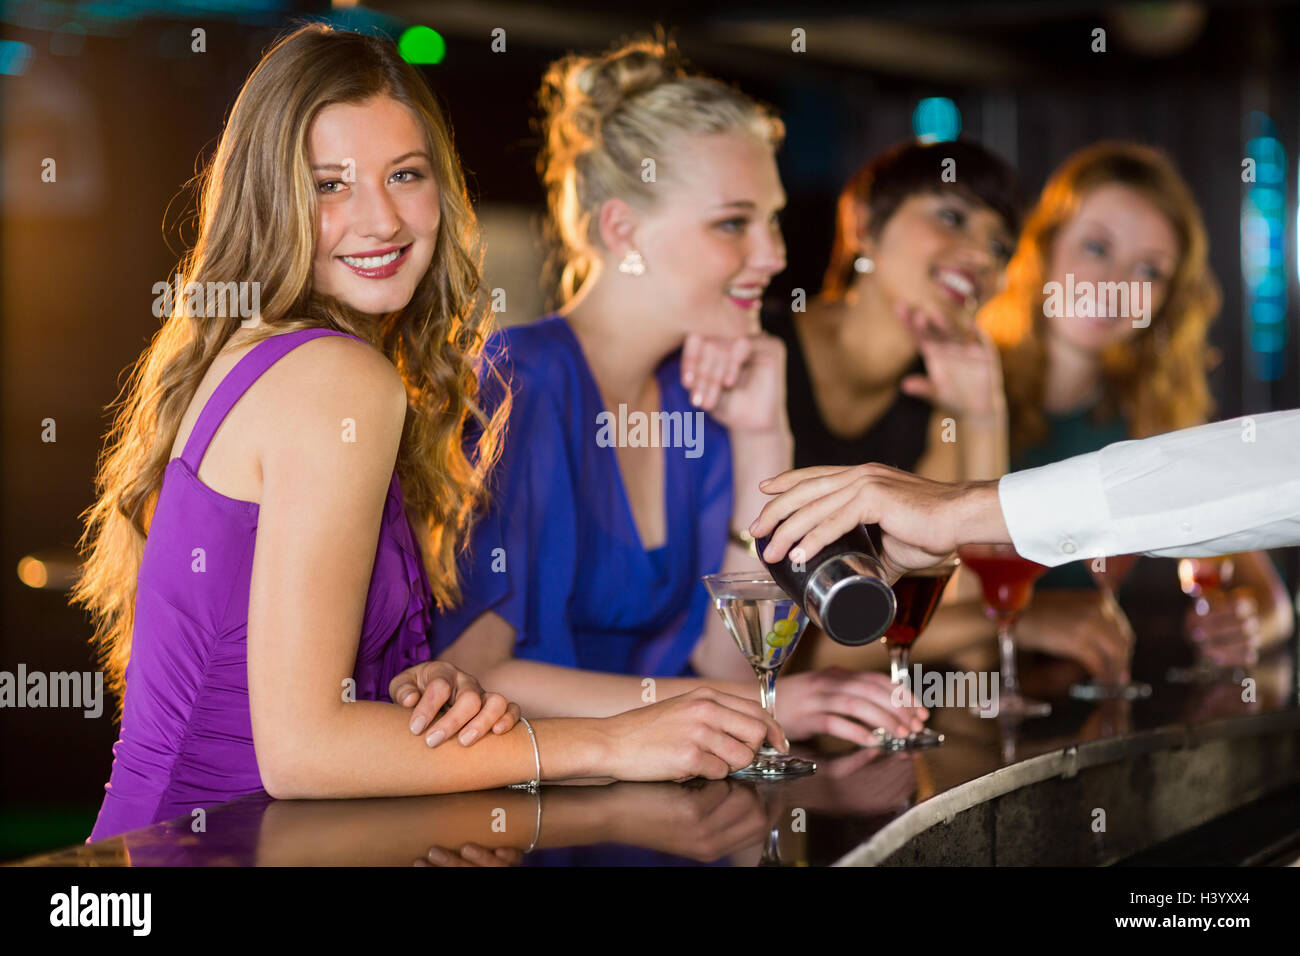 Waiter pouring cocktail in womans glass at bar counter Stock Photo